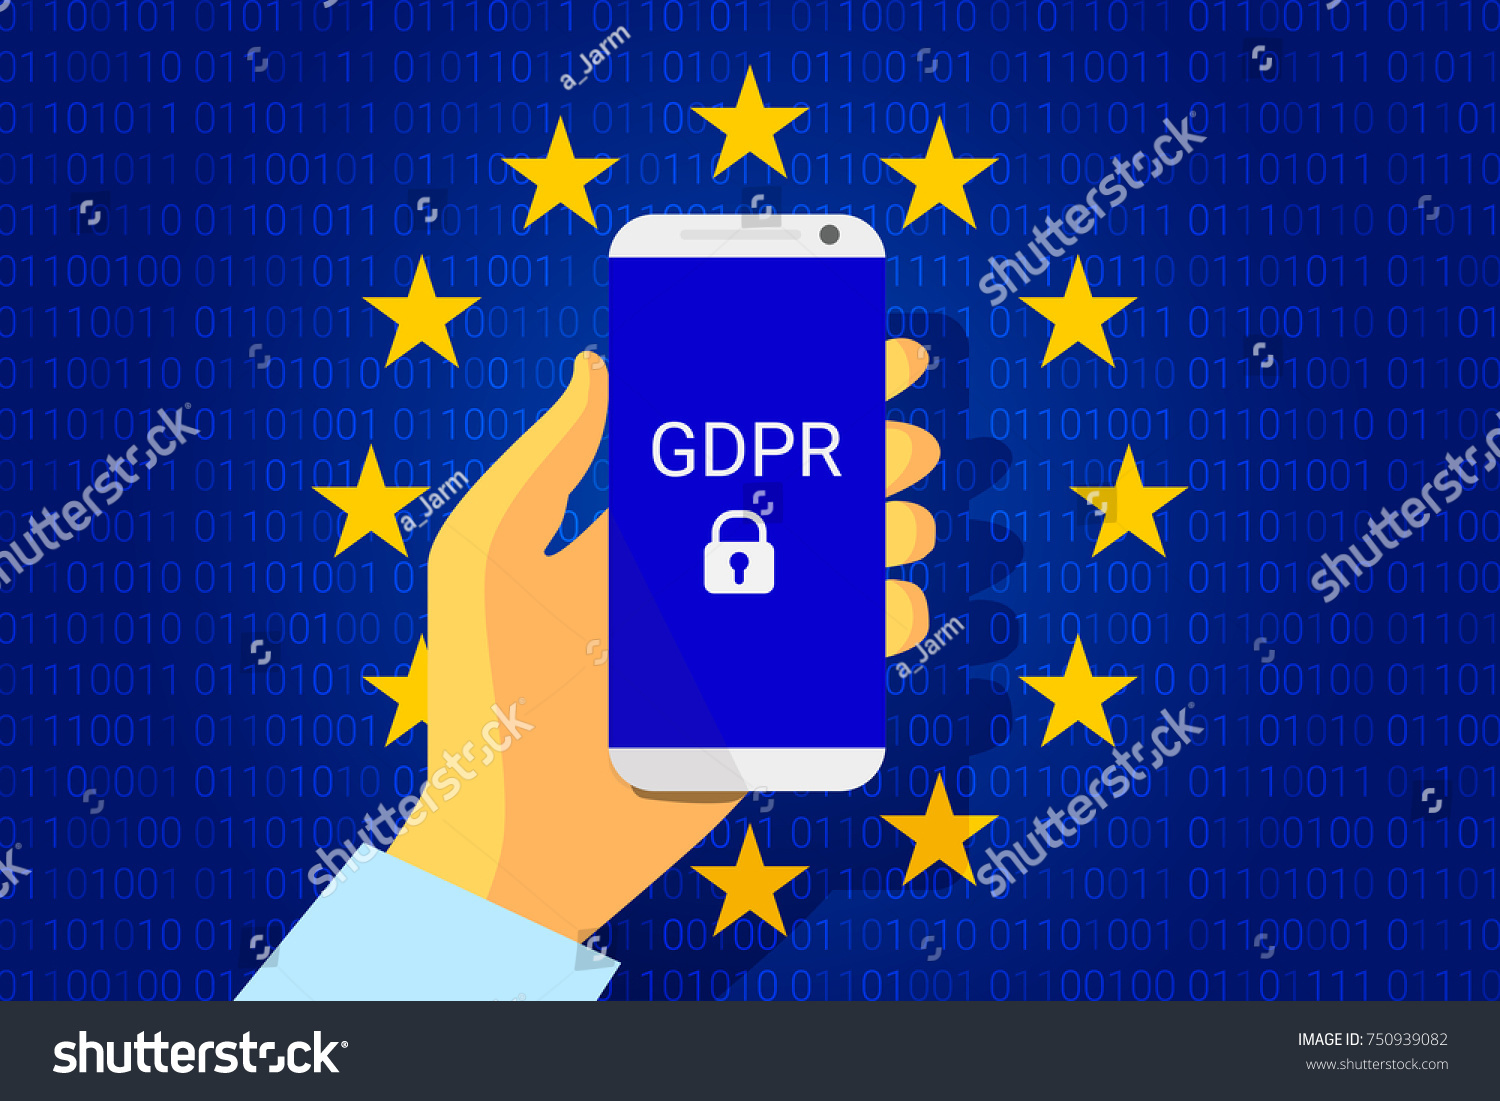 Gdpr General Data Protection Security Technology Stock Vector Background Regulation Phone In Hand